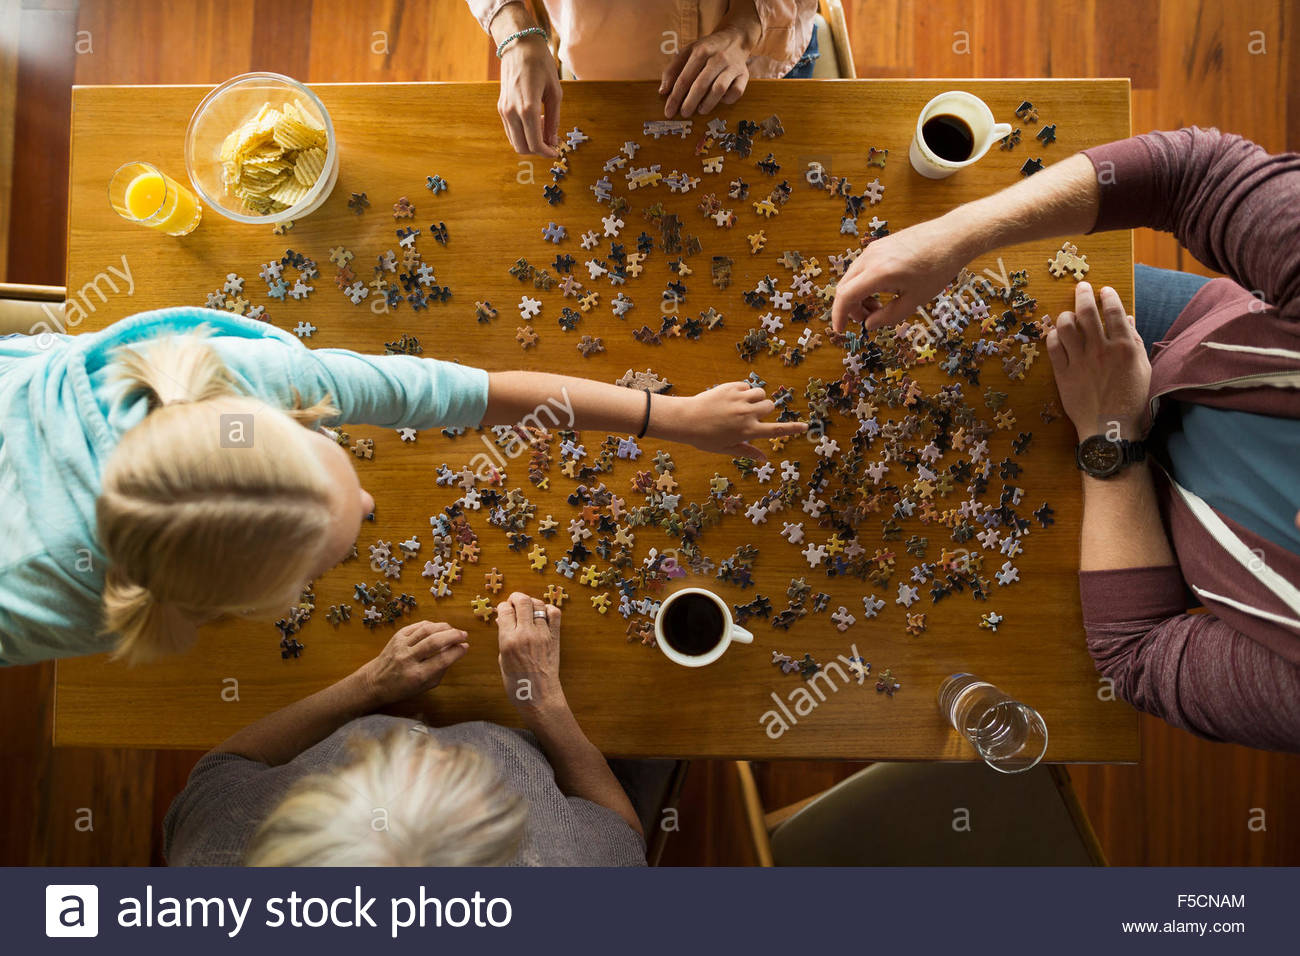 Overhead view family assembling jigsaw puzzle at table - Stock Image